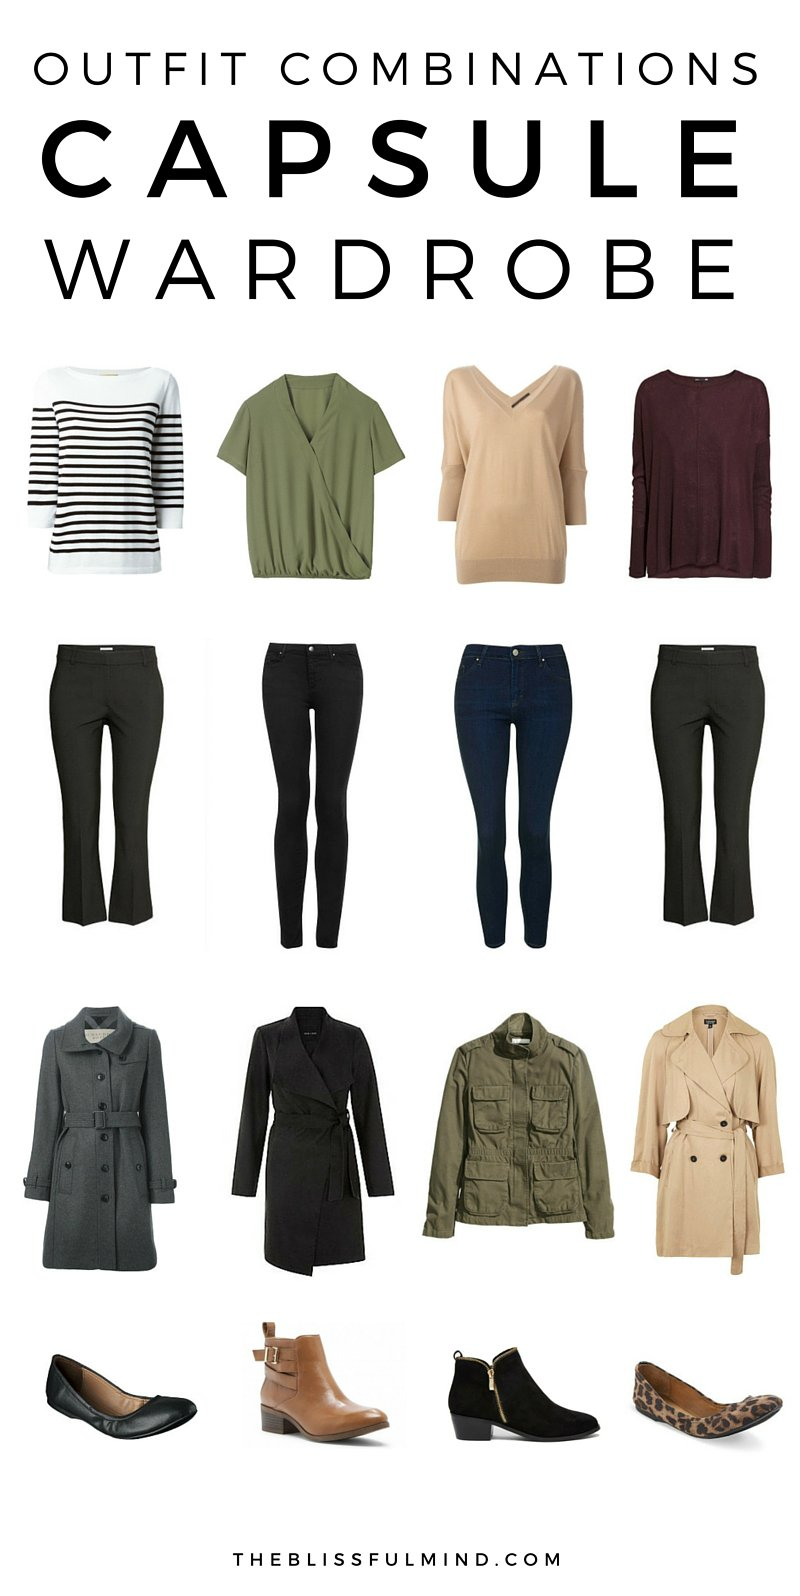 Capsule Wardrobe: 36-Piece Fall Winter Capsule Wardrobe